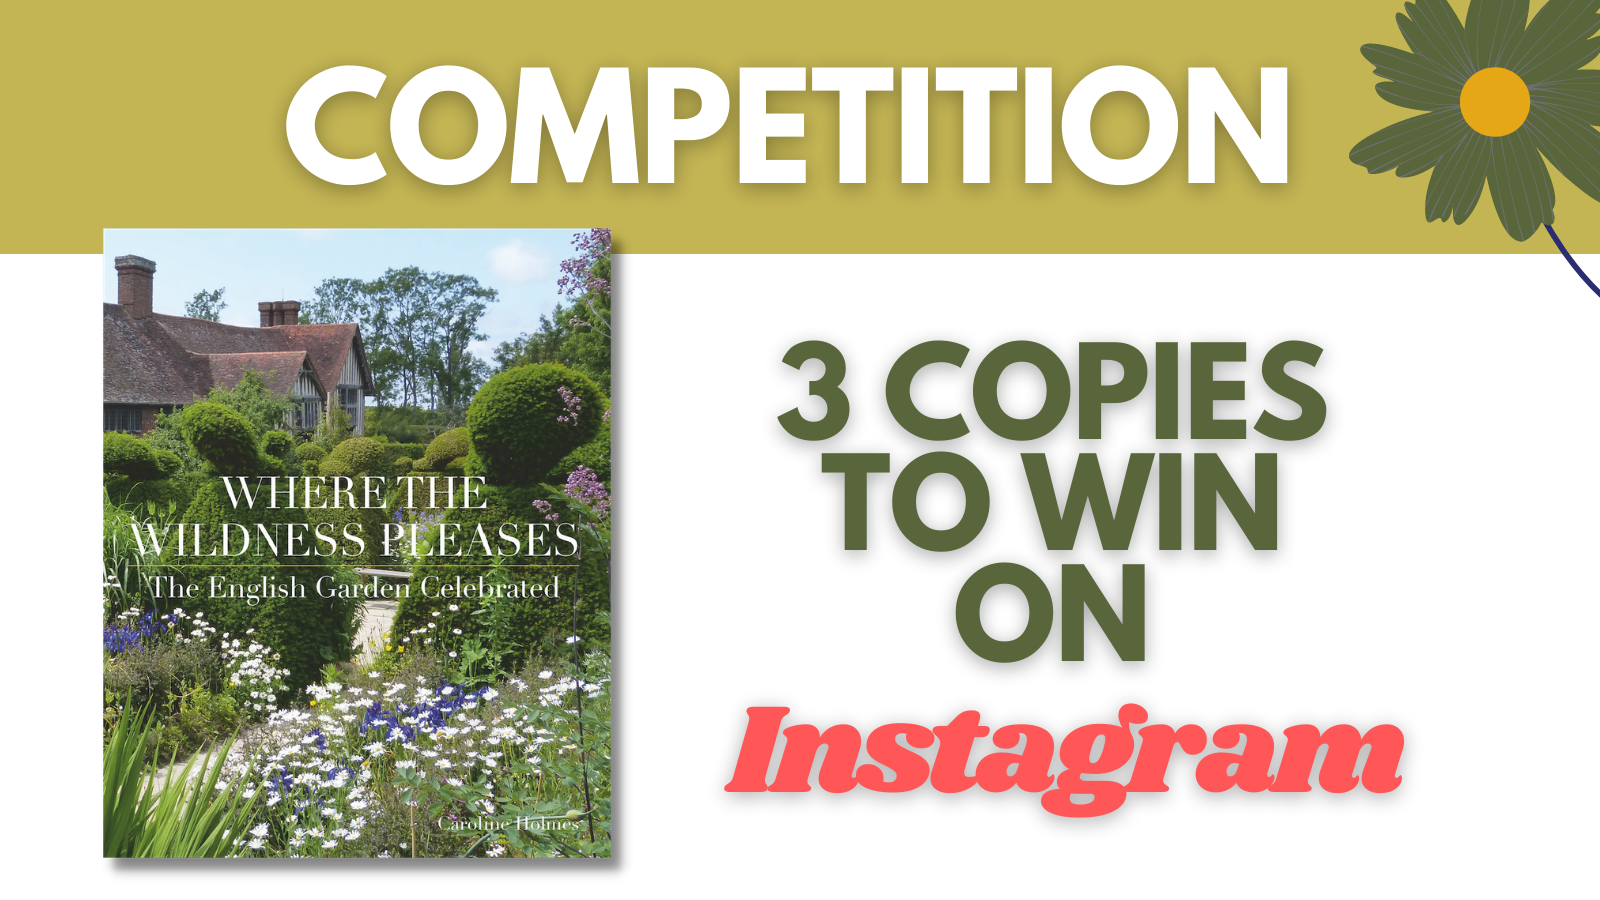 'Where the Wildness Pleases' book competition